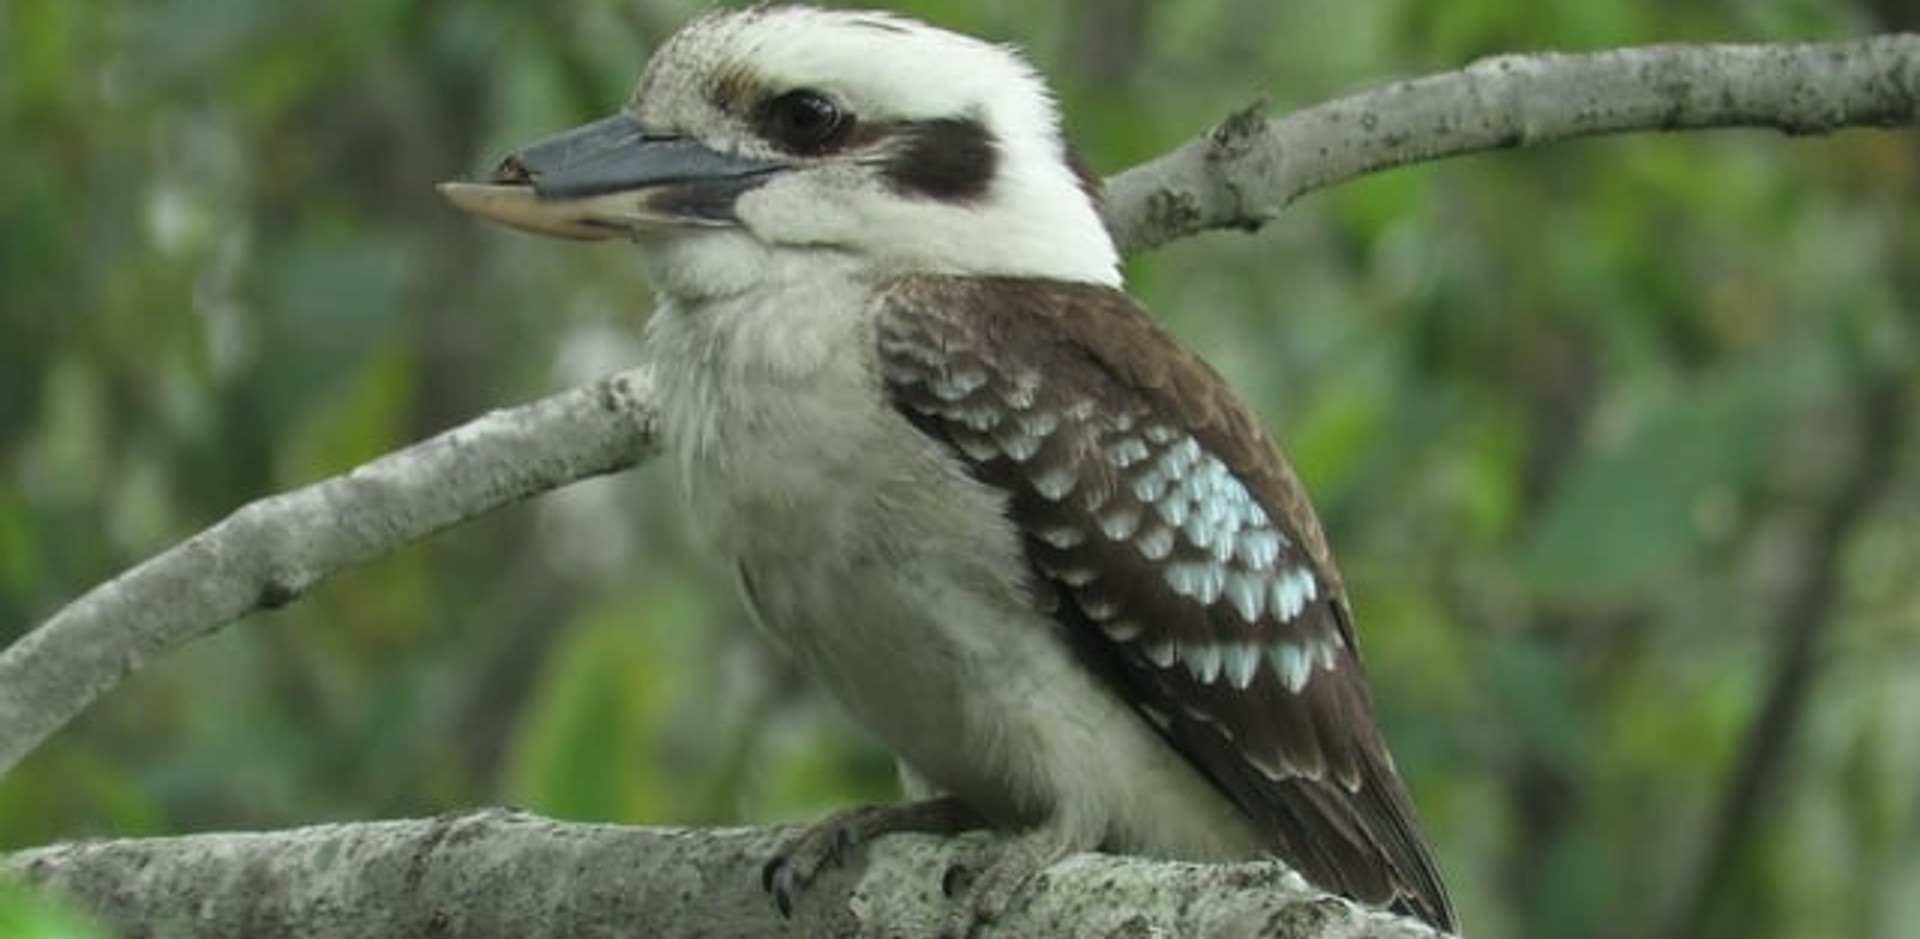 Adult Laughing Kookaburra with damaged beak